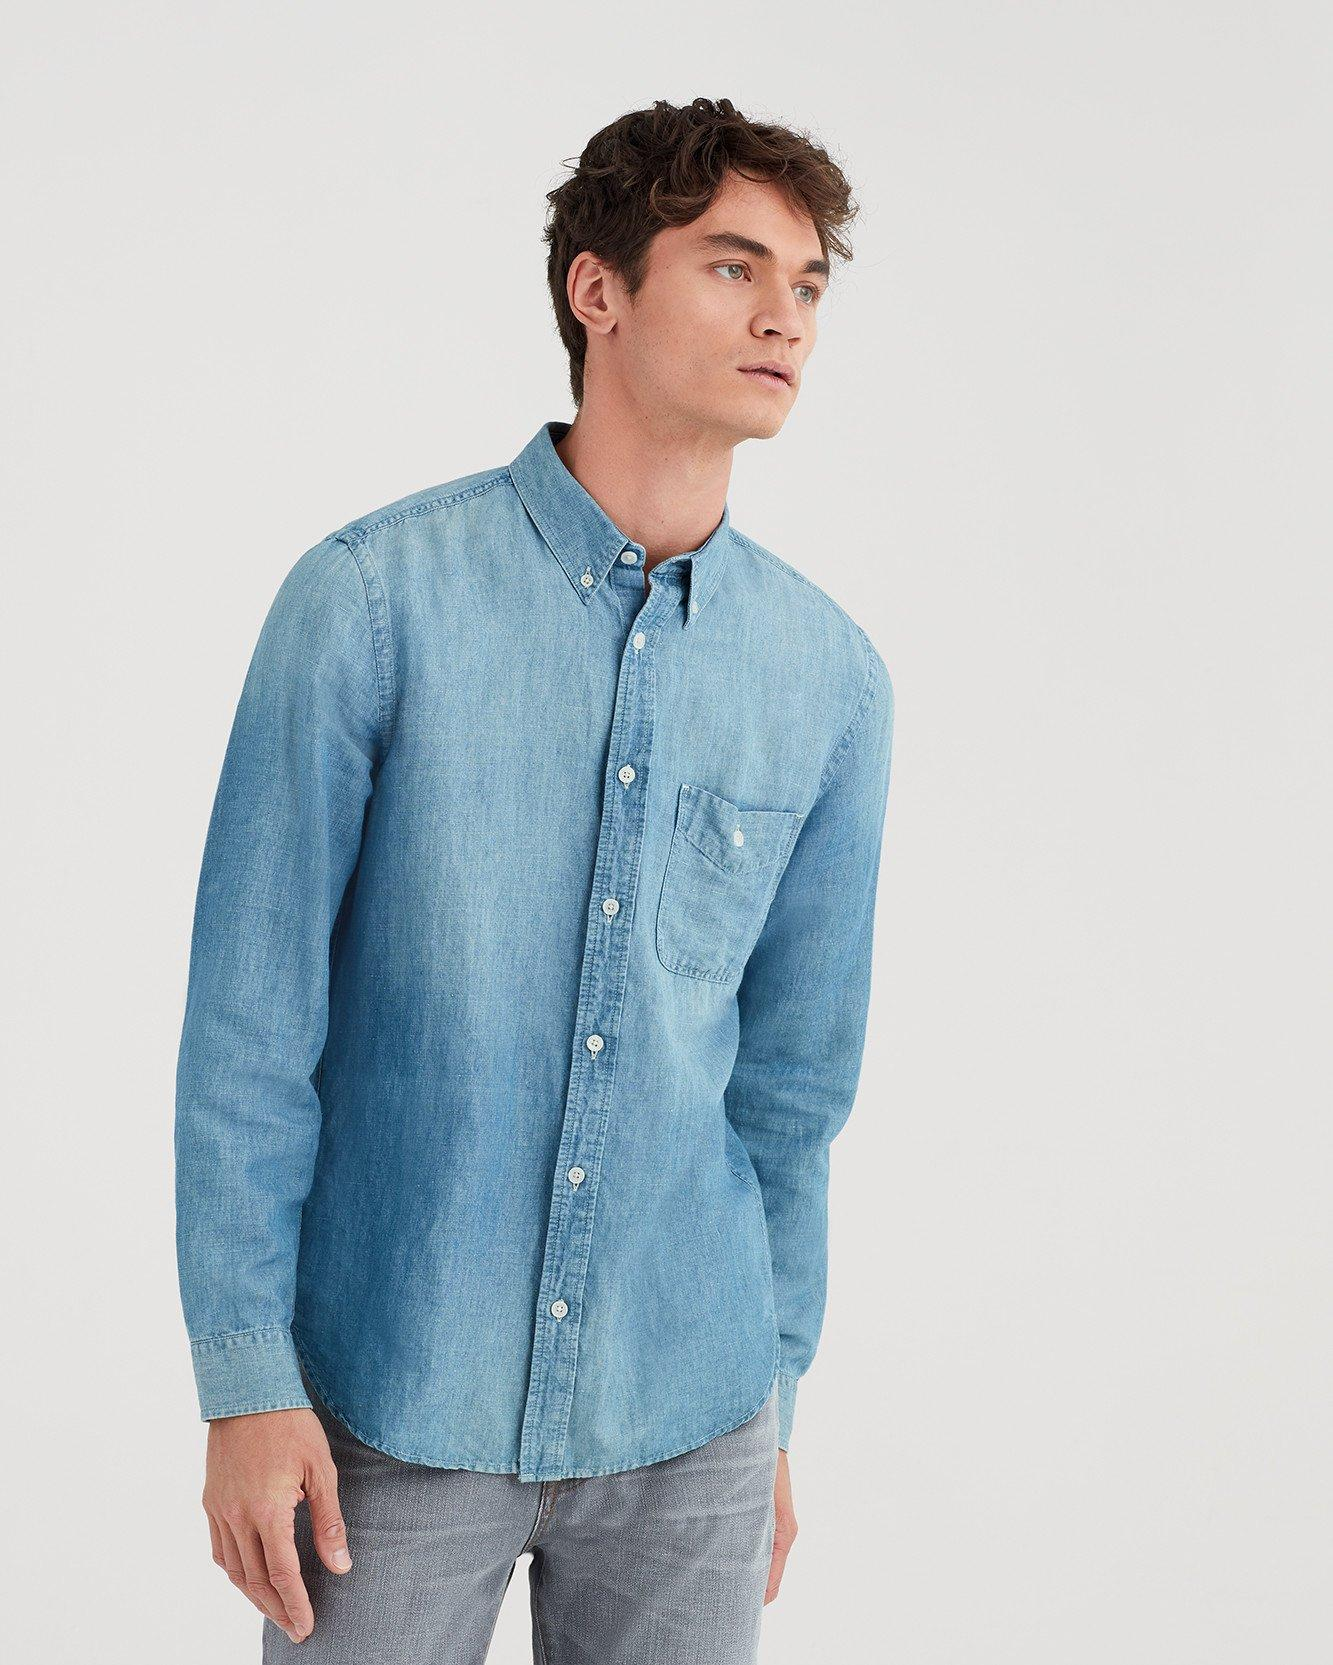 16688b23f1 Lyst - 7 For All Mankind Long Sleeve Front Pocket Denim Shirt In ...